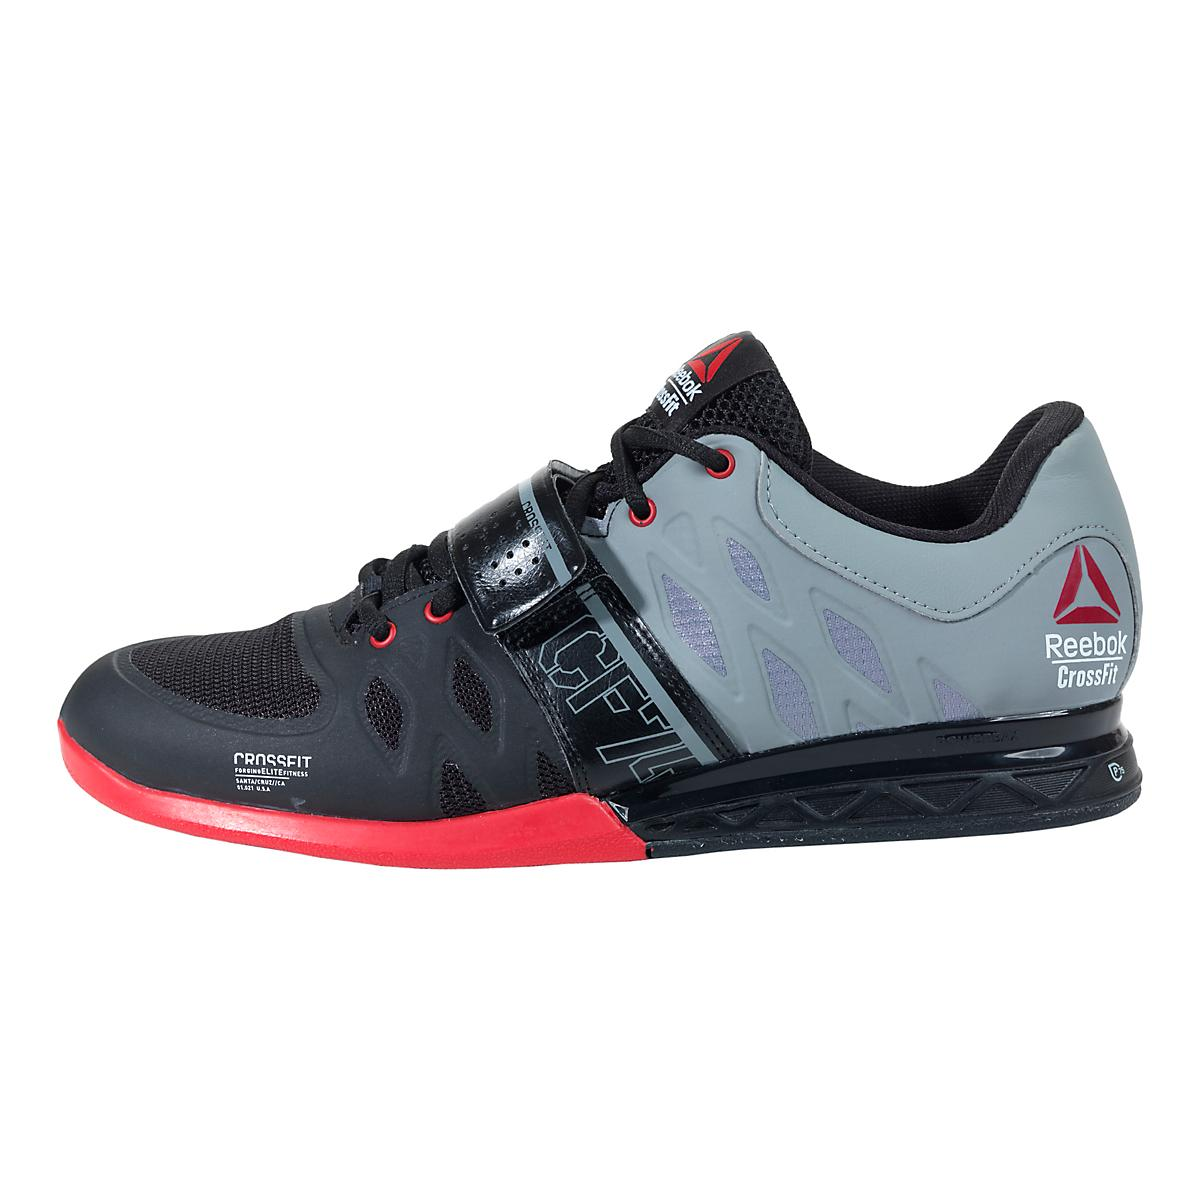 7e26538b8c323a Mens Reebok CrossFit Lifter 2.0 Cross Training Shoe at Road Runner Sports